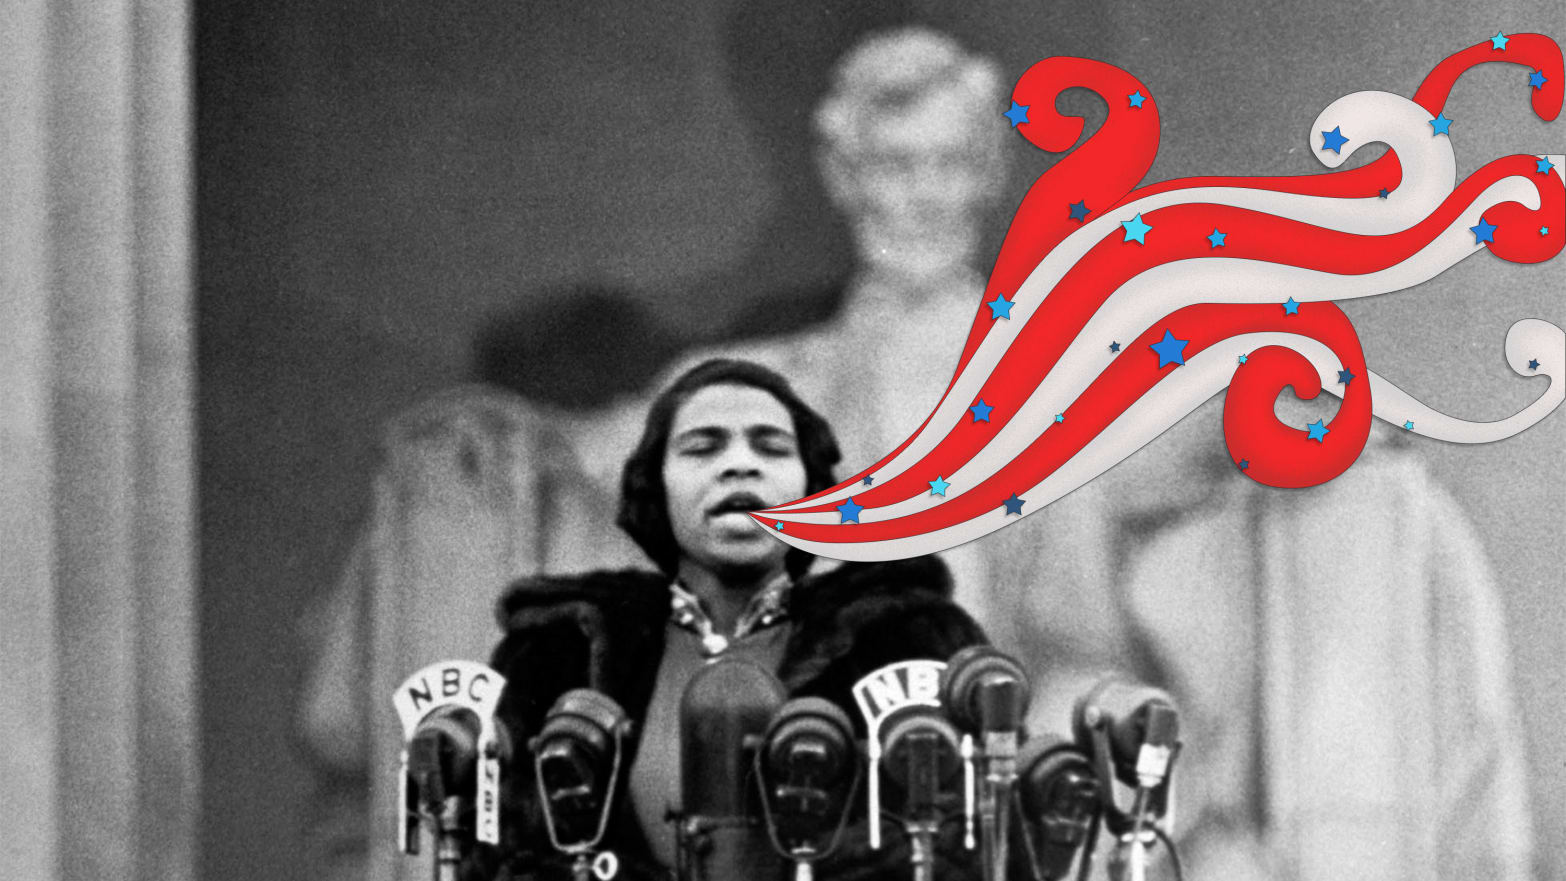 Whites Said Marian Anderson Couldn't Sing In Their Hall. So She Sang at the Lincoln Memorial in a Concert for the Ages.